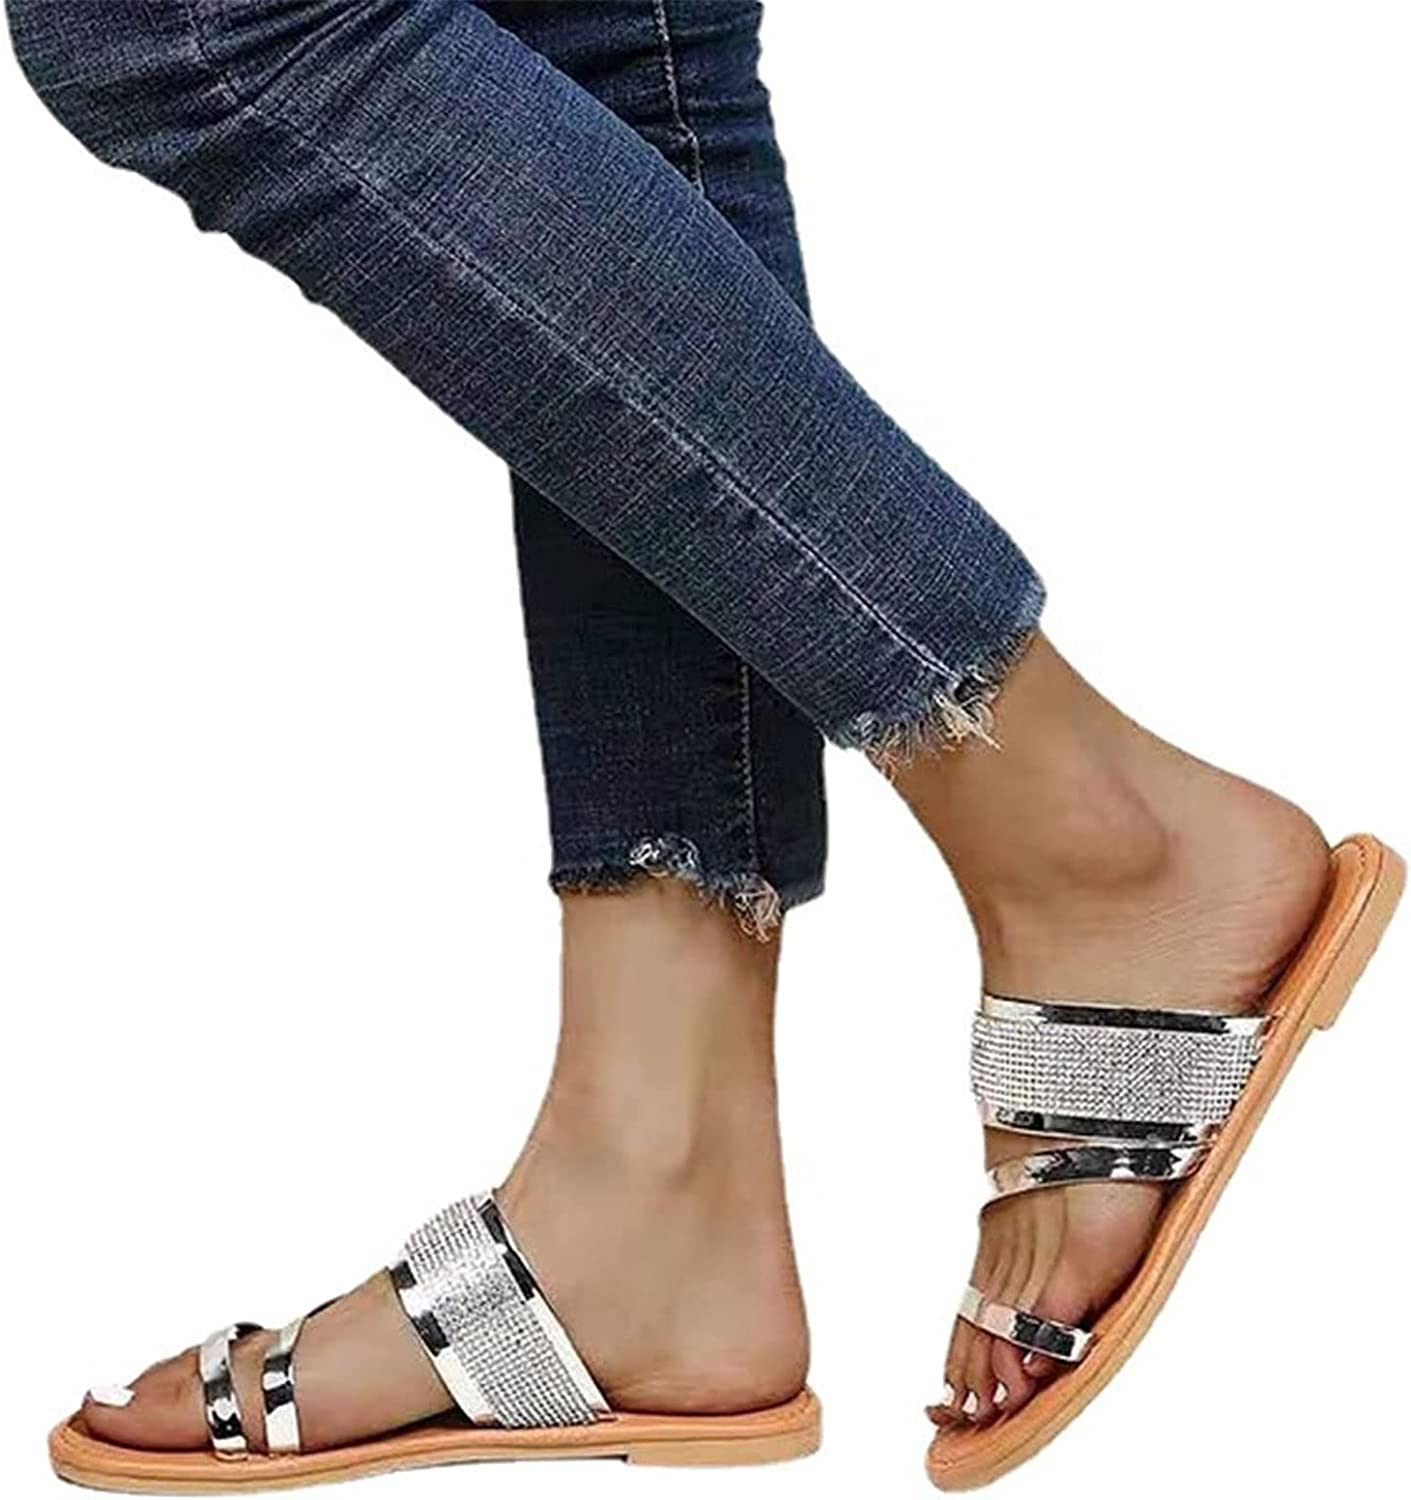 Meng Women's Sandals Low price Summer Shoes Outdoor O Casual Fort Worth Mall Walking